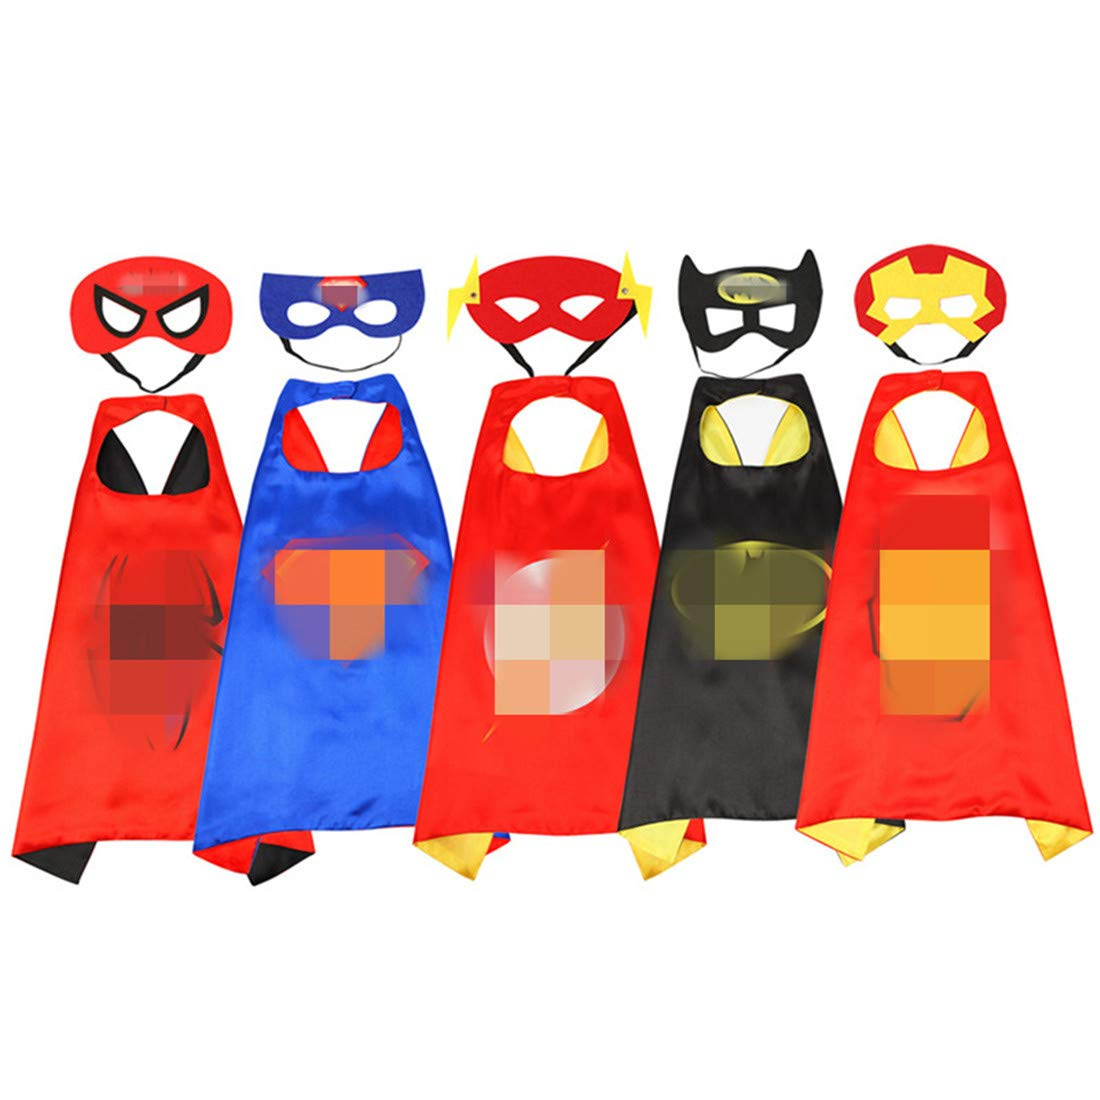 Hero Pattern Dress Up Costumes for Boys and Girls-5 Satin Capes with Felt Masks Comics Cartoon Dress Up Kids Toys Toddler